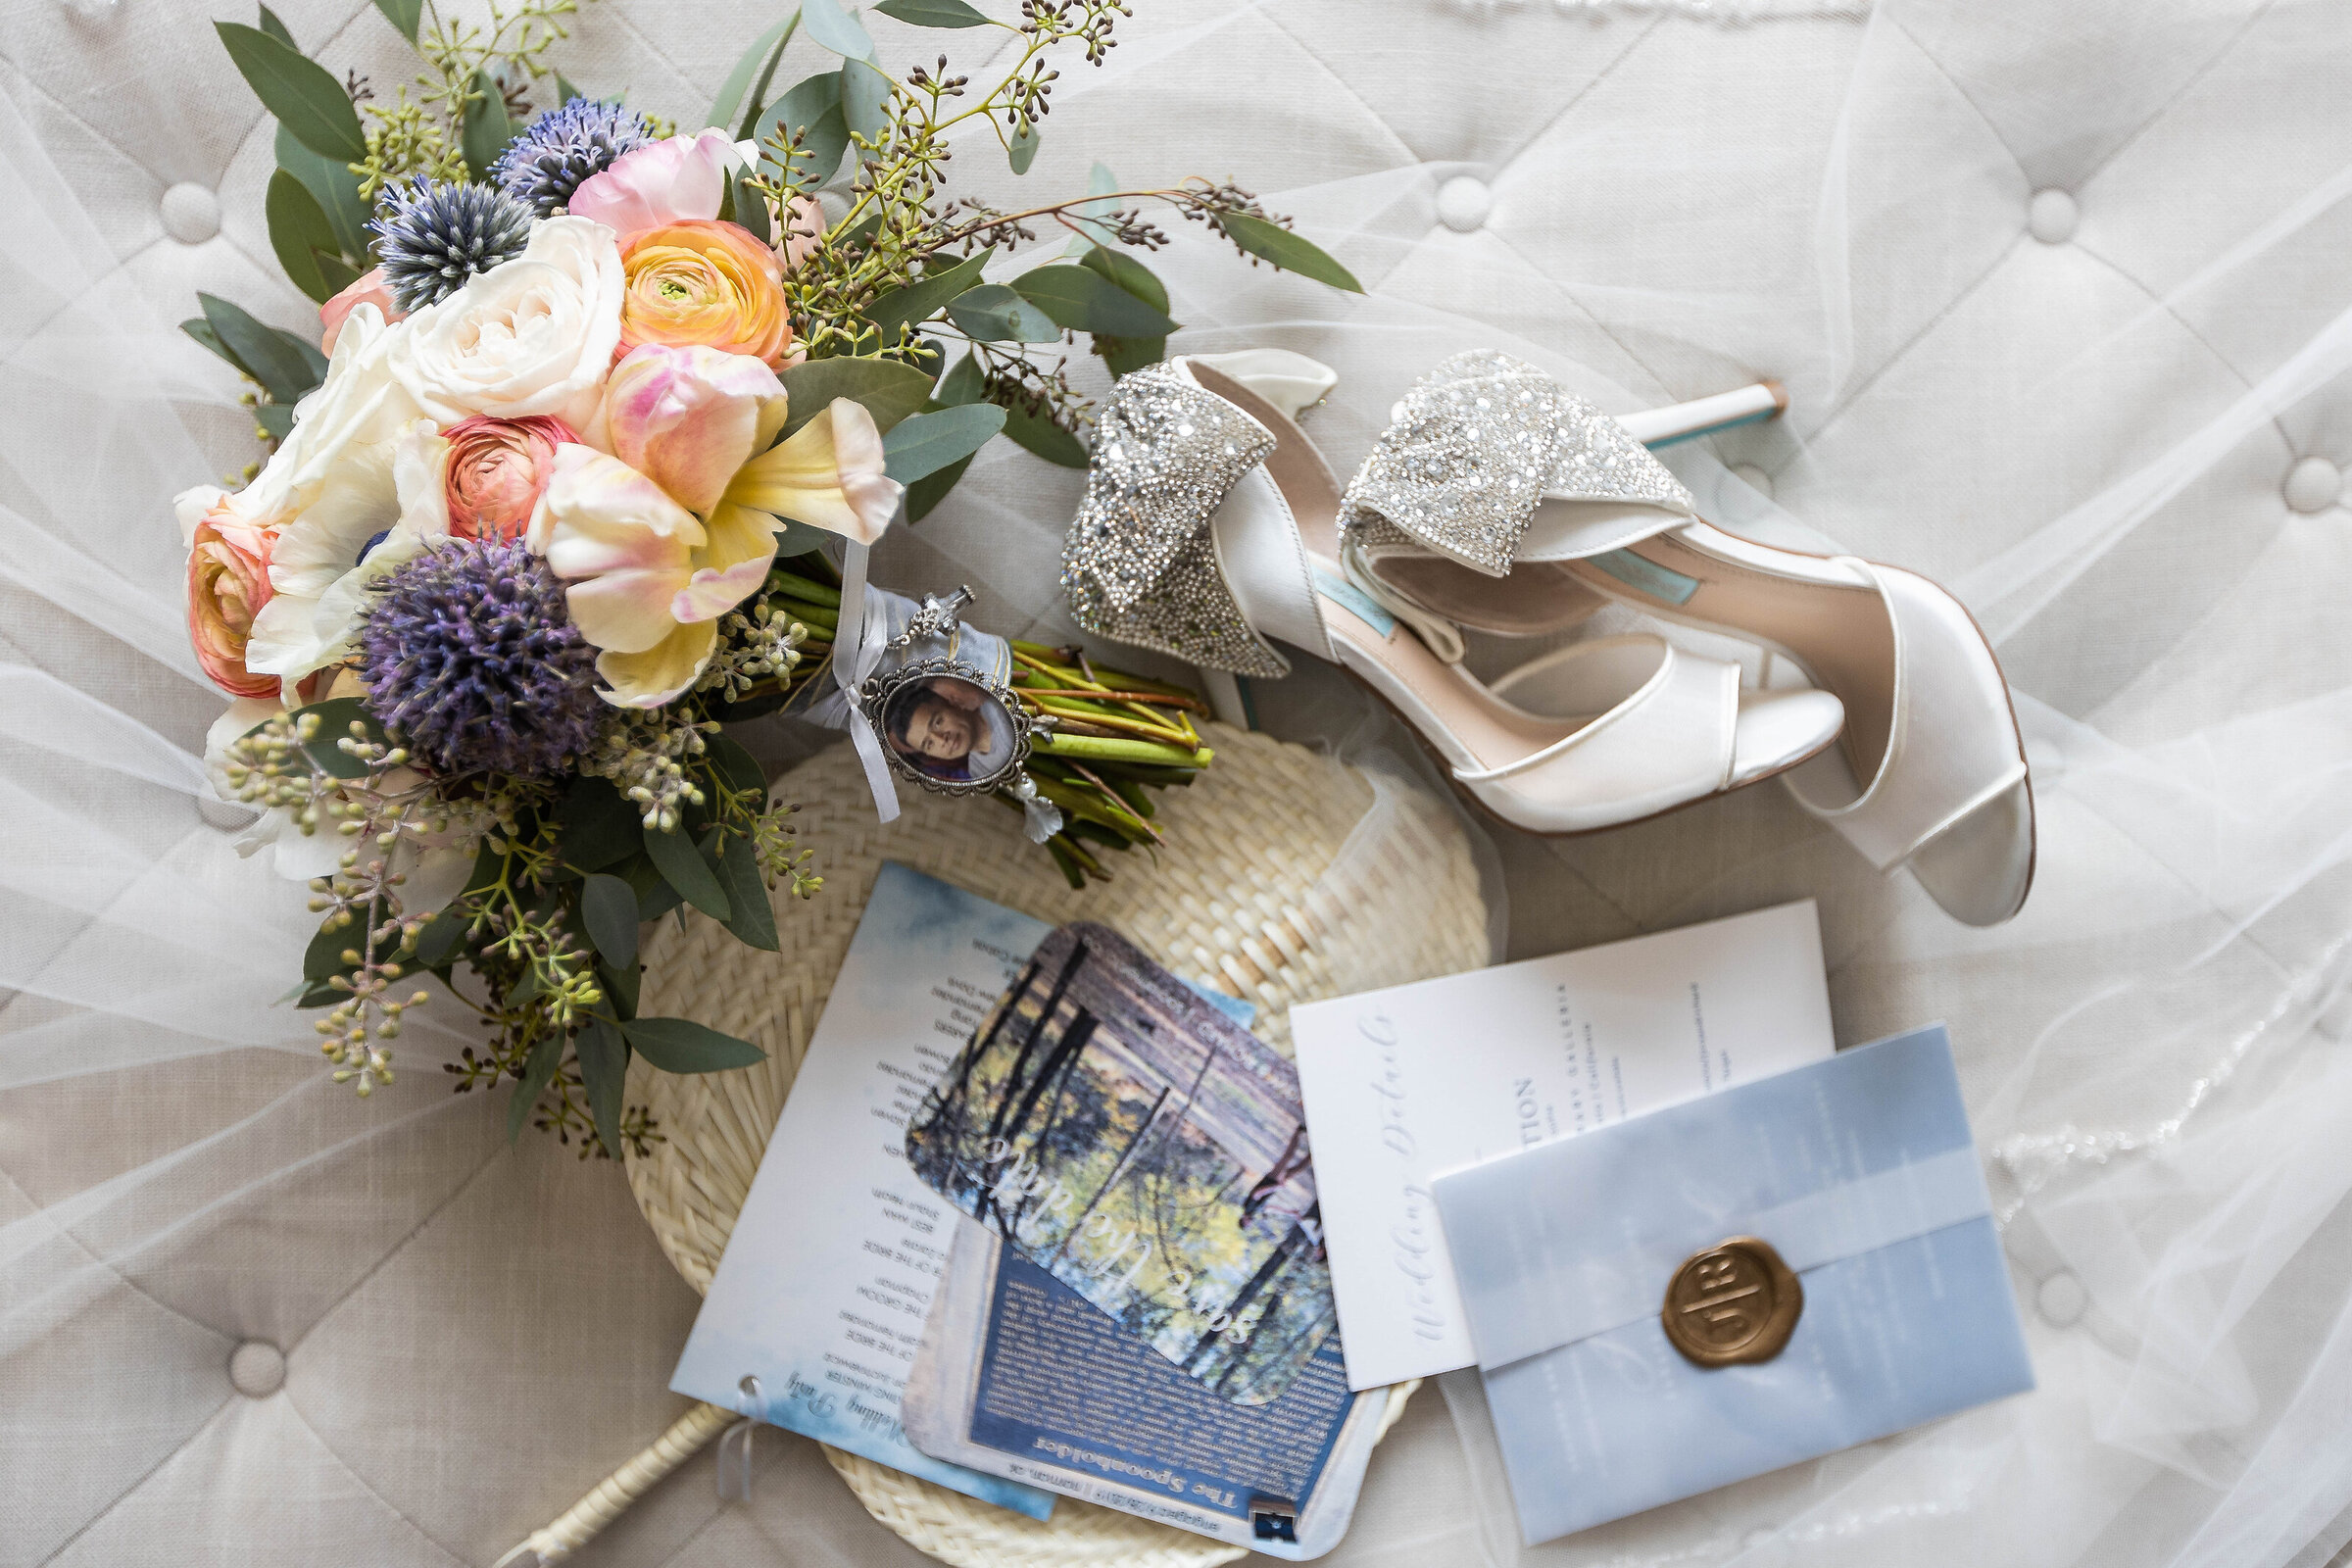 Flat lay of wedding details including shoes, invitations and flower bridal bouquet by sacramento wedding photographer, philippe studio pro